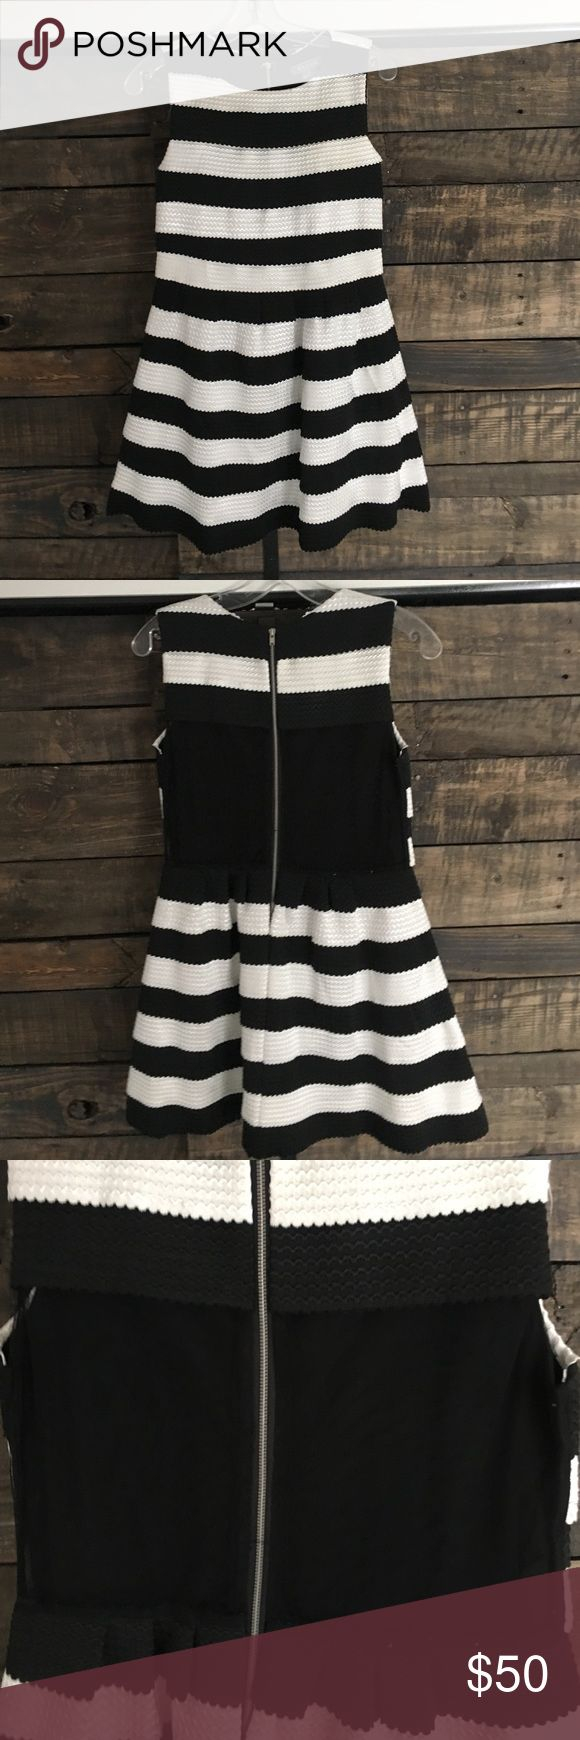 Black and White Striped Cocktail Dress Gorgeous, black and white cocktail dress purchased at a local Boutique in Saratoga Springs, NY. Worn ONCE! Mesh back. Silver zipper. Mint condition! Knee length - Size medium. Gracia Dresses Midi